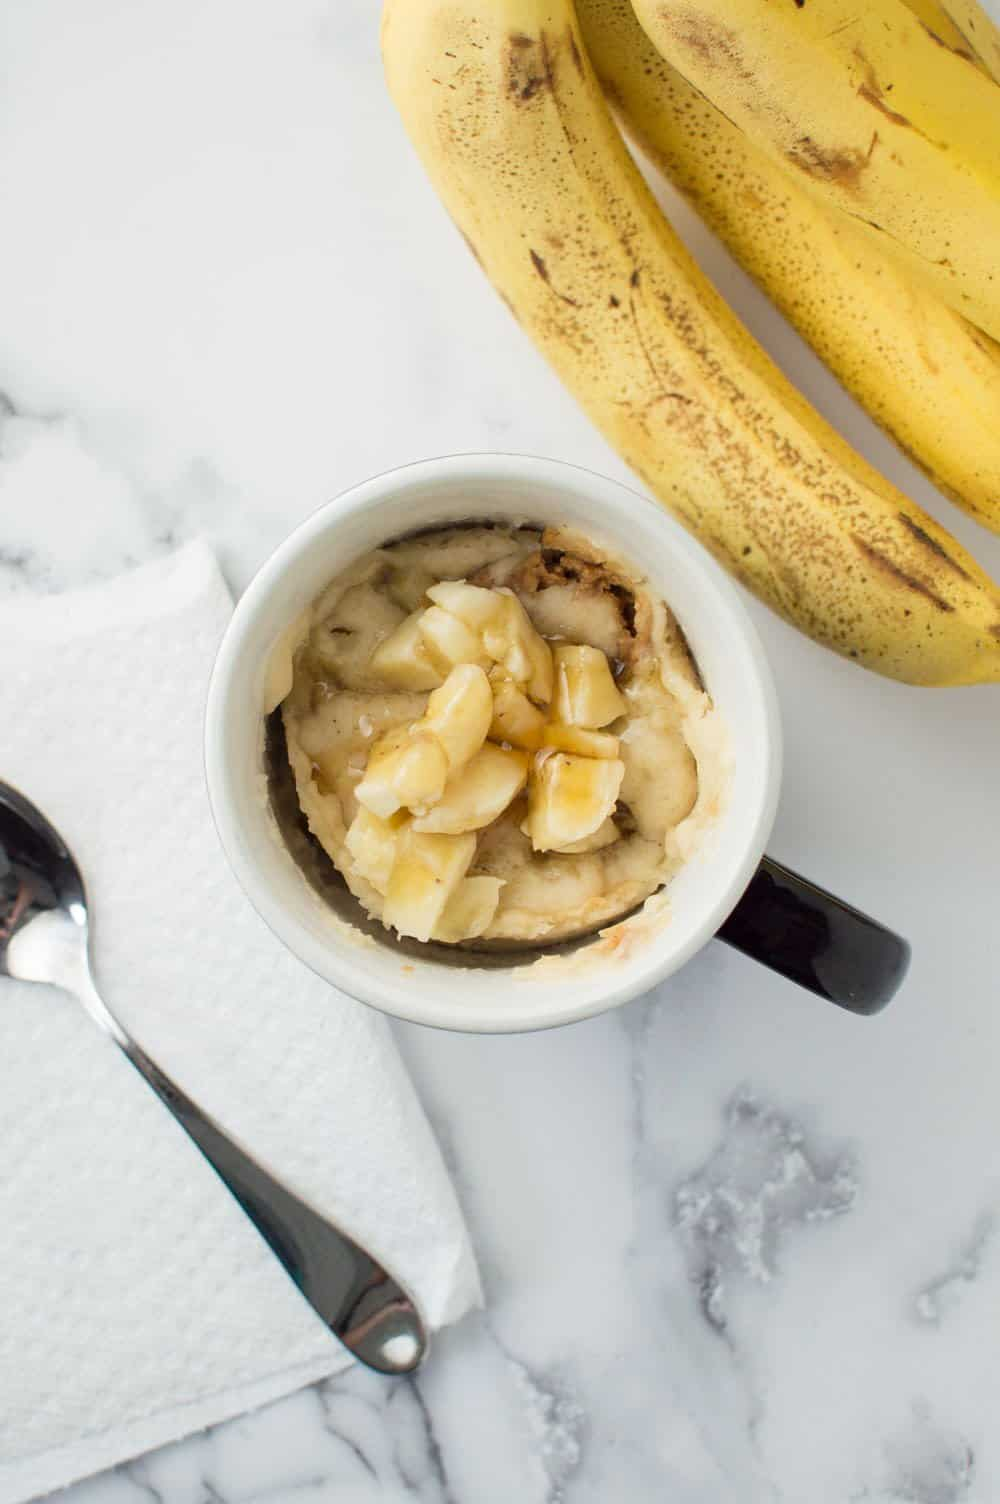 Top down view of mug cake with banana pieces on the top and a bunch of bananas on the side